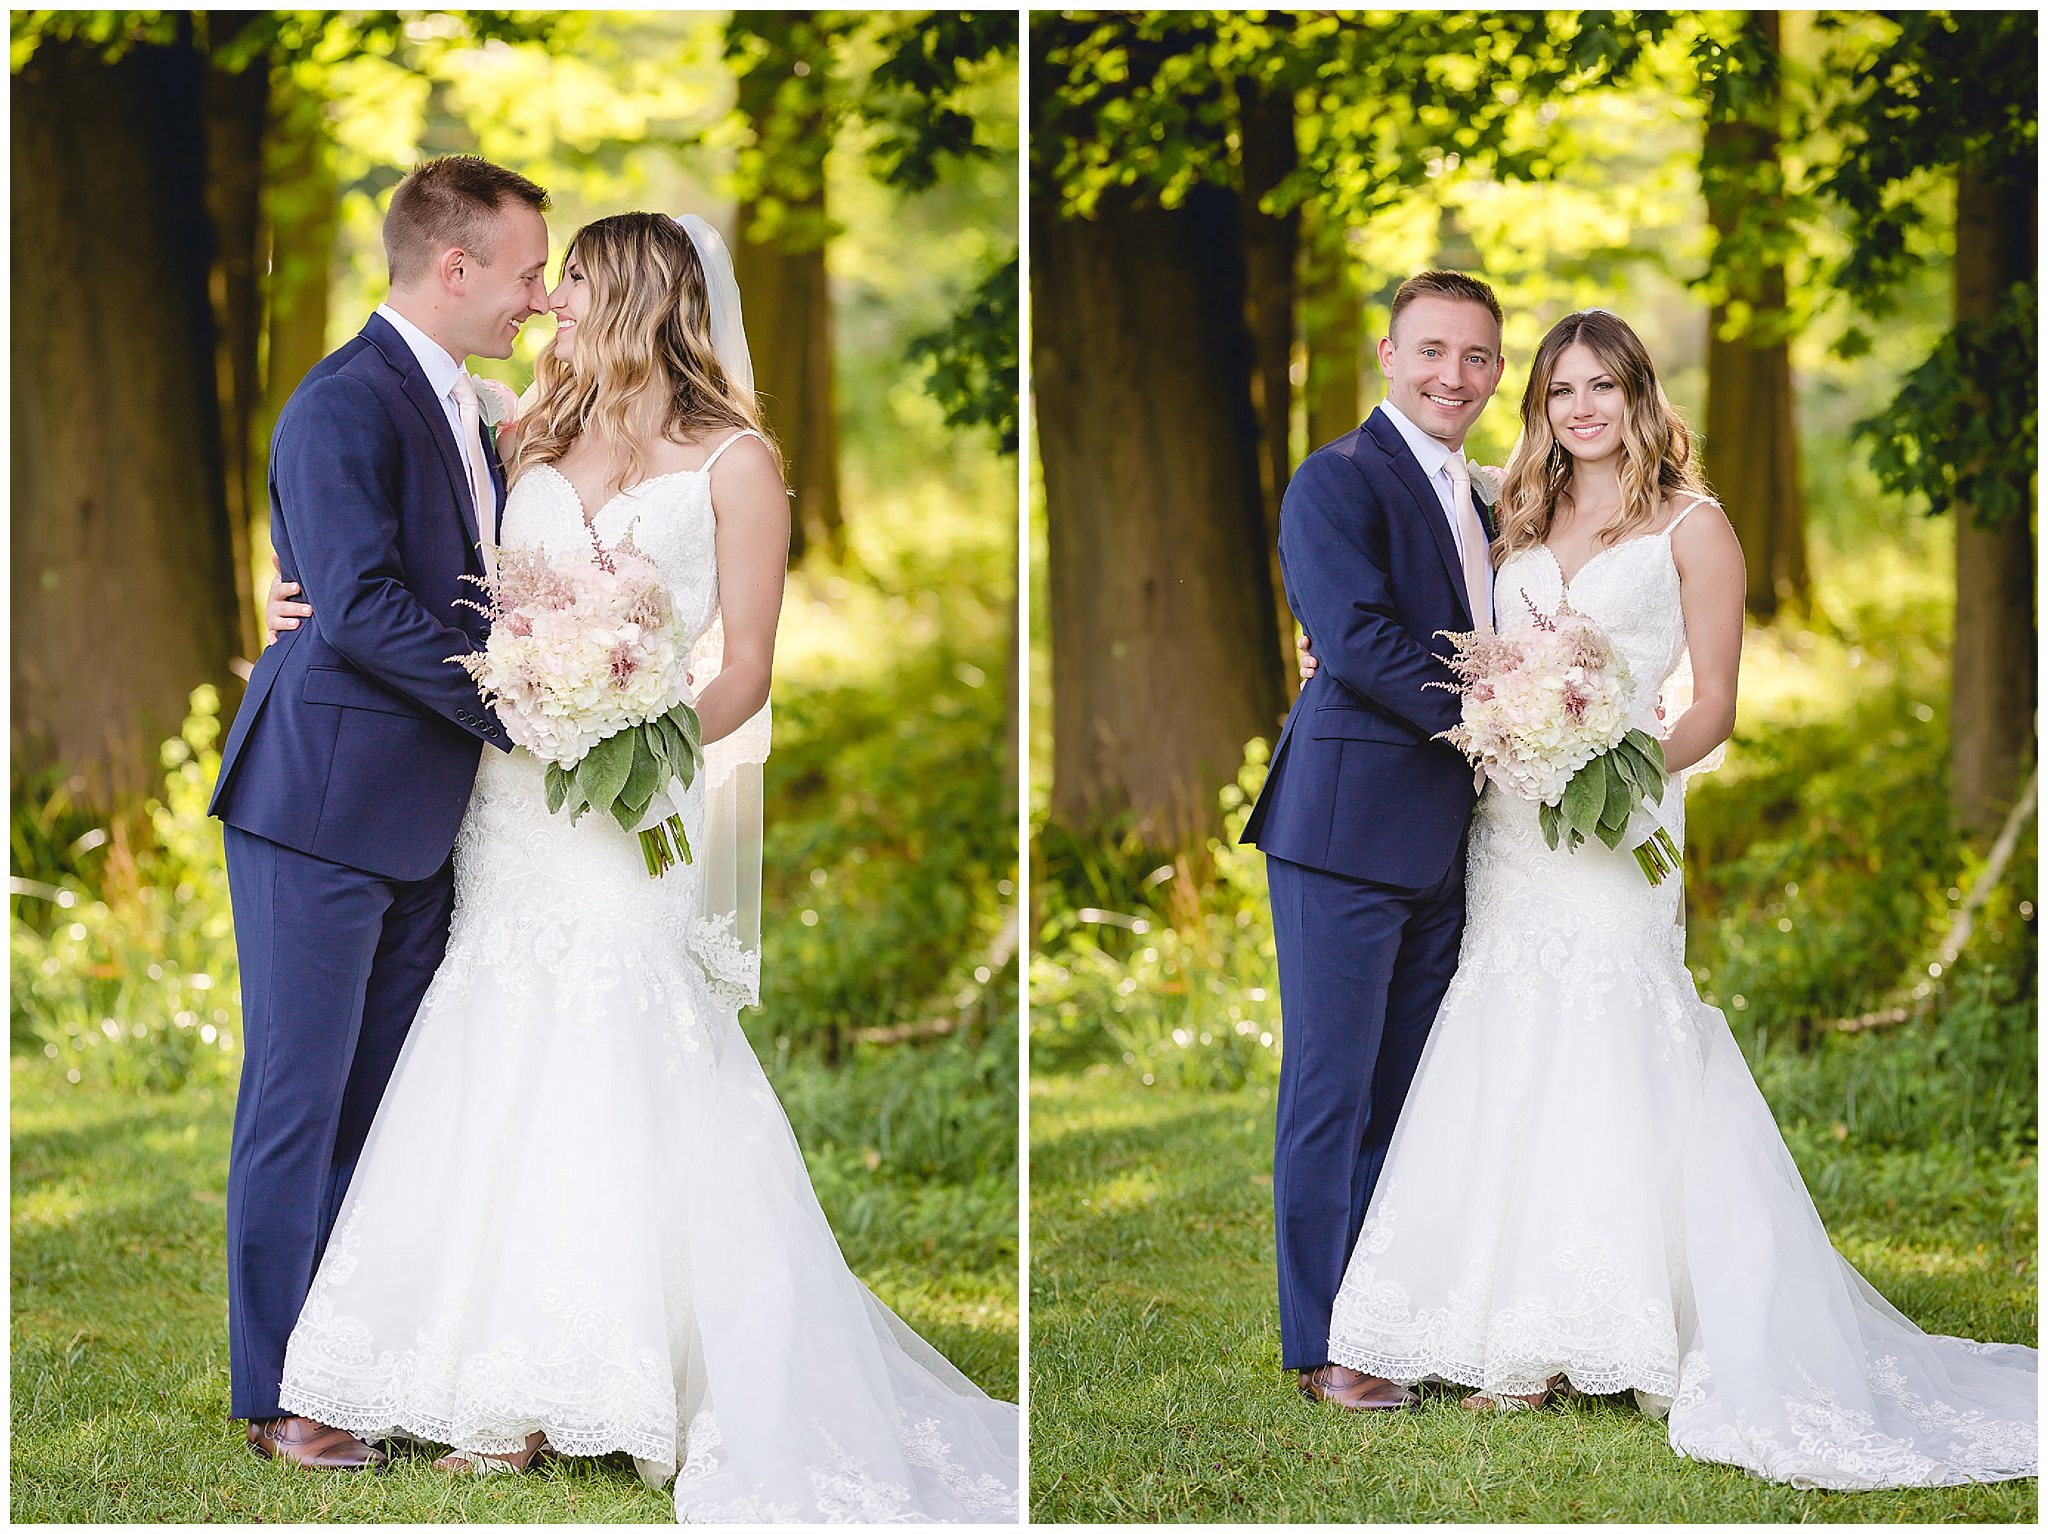 Sunkissed portraits of the bride and groom at Hidden Valley Resort